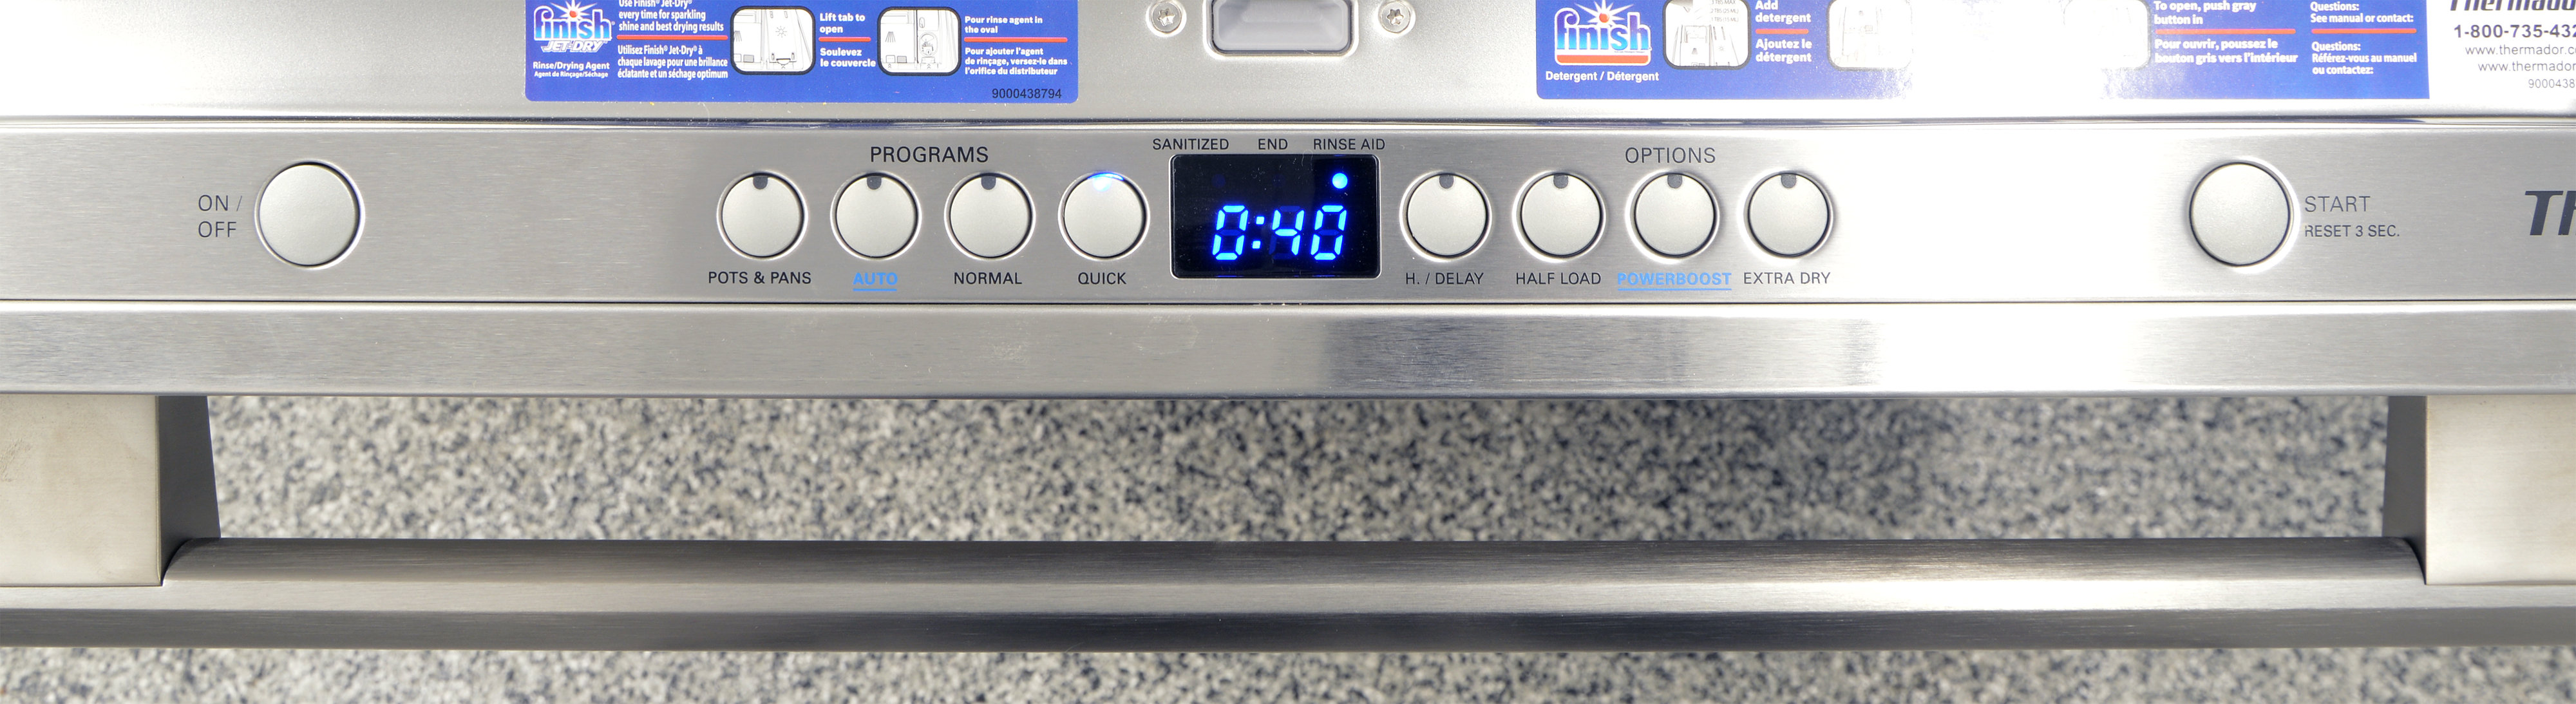 Control panel on the Thermador DWHD440MFM